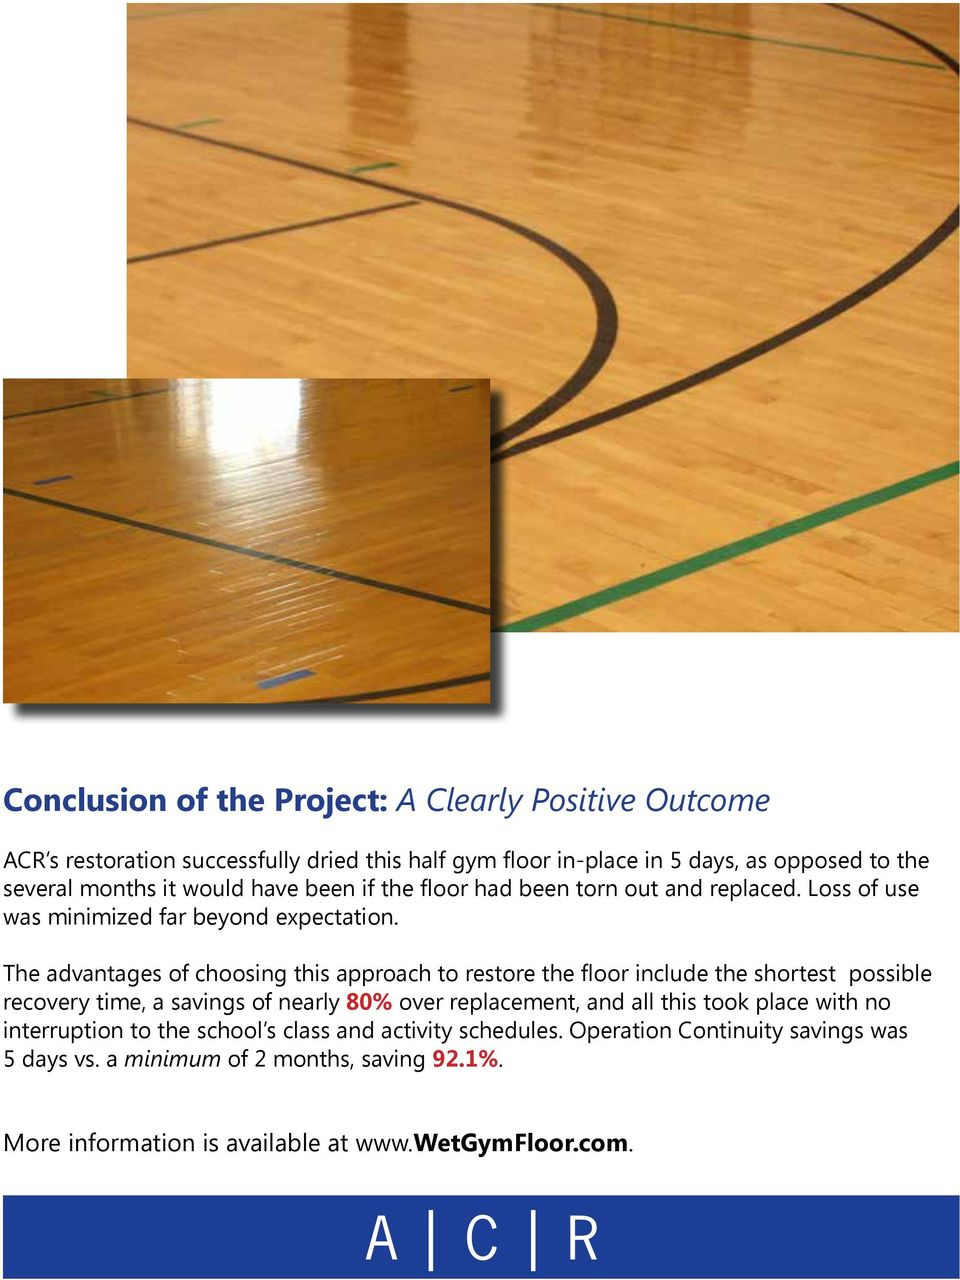 The advantages of choosing this approach to restore the floor include the shortest possible recovery time, a savings of nearly 80% over replacement, and all this